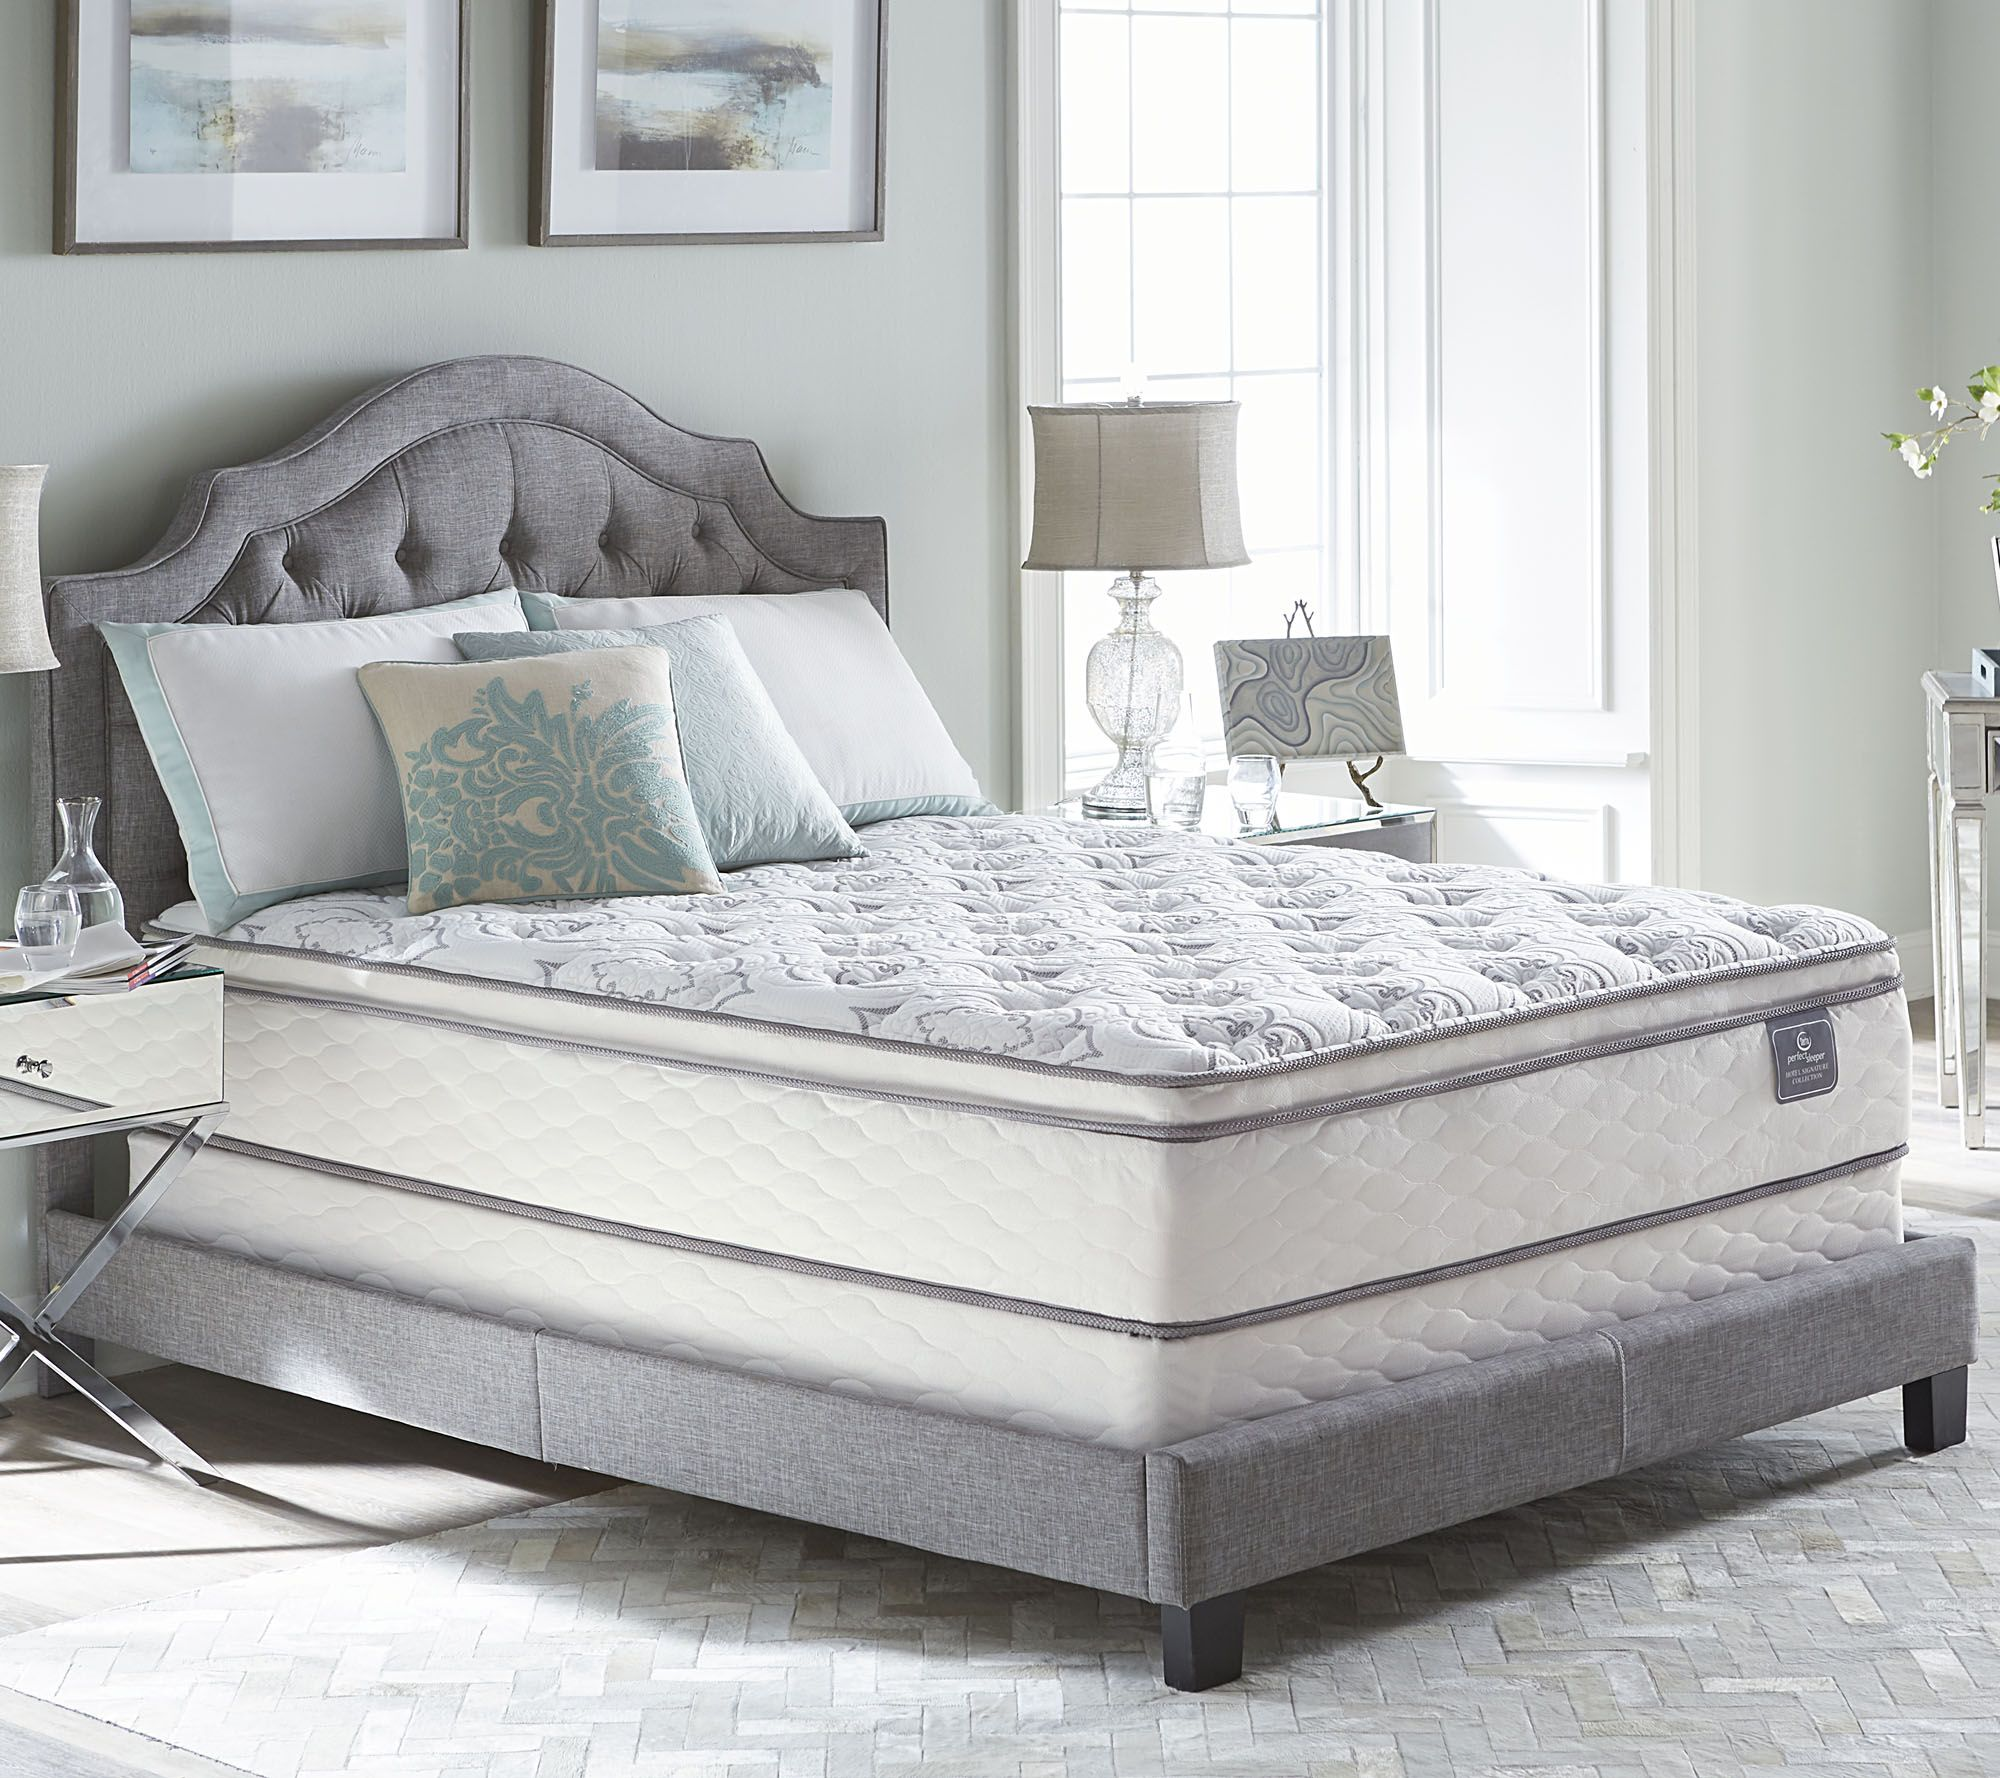 Serta Mattress Uk Serta Perfect Sleeper Cache Hotel Pillowtop Queen Mattress Set Qvc